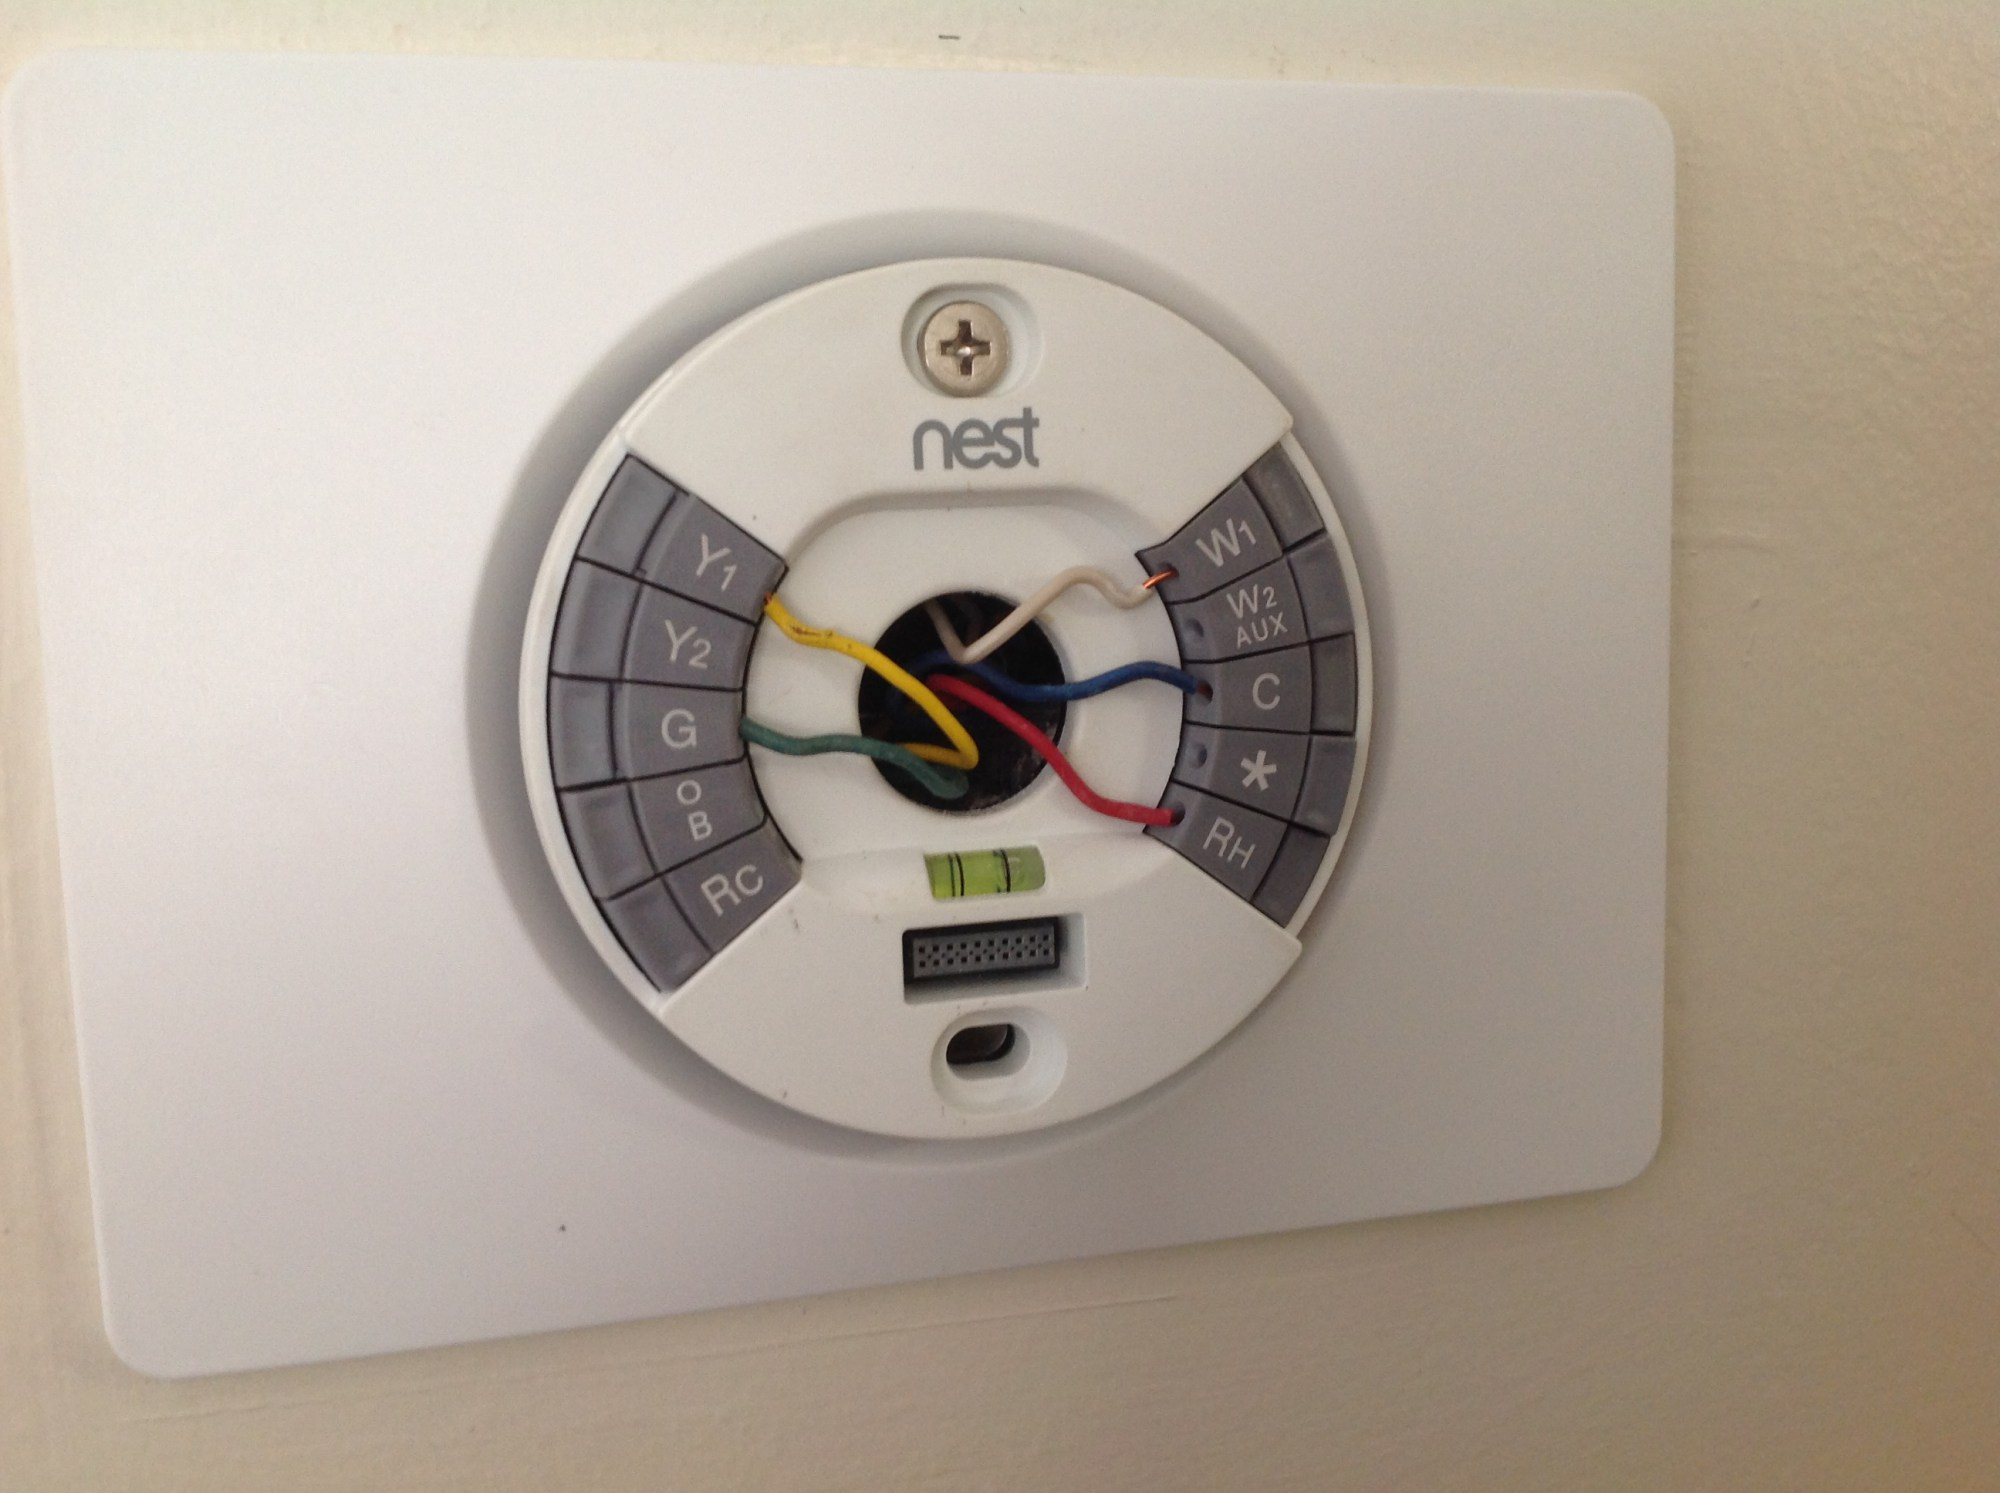 hight resolution of nest thermostat wiring diagram for humidifier with coleman aprilaire model 560 wiring diagram aprilaire models